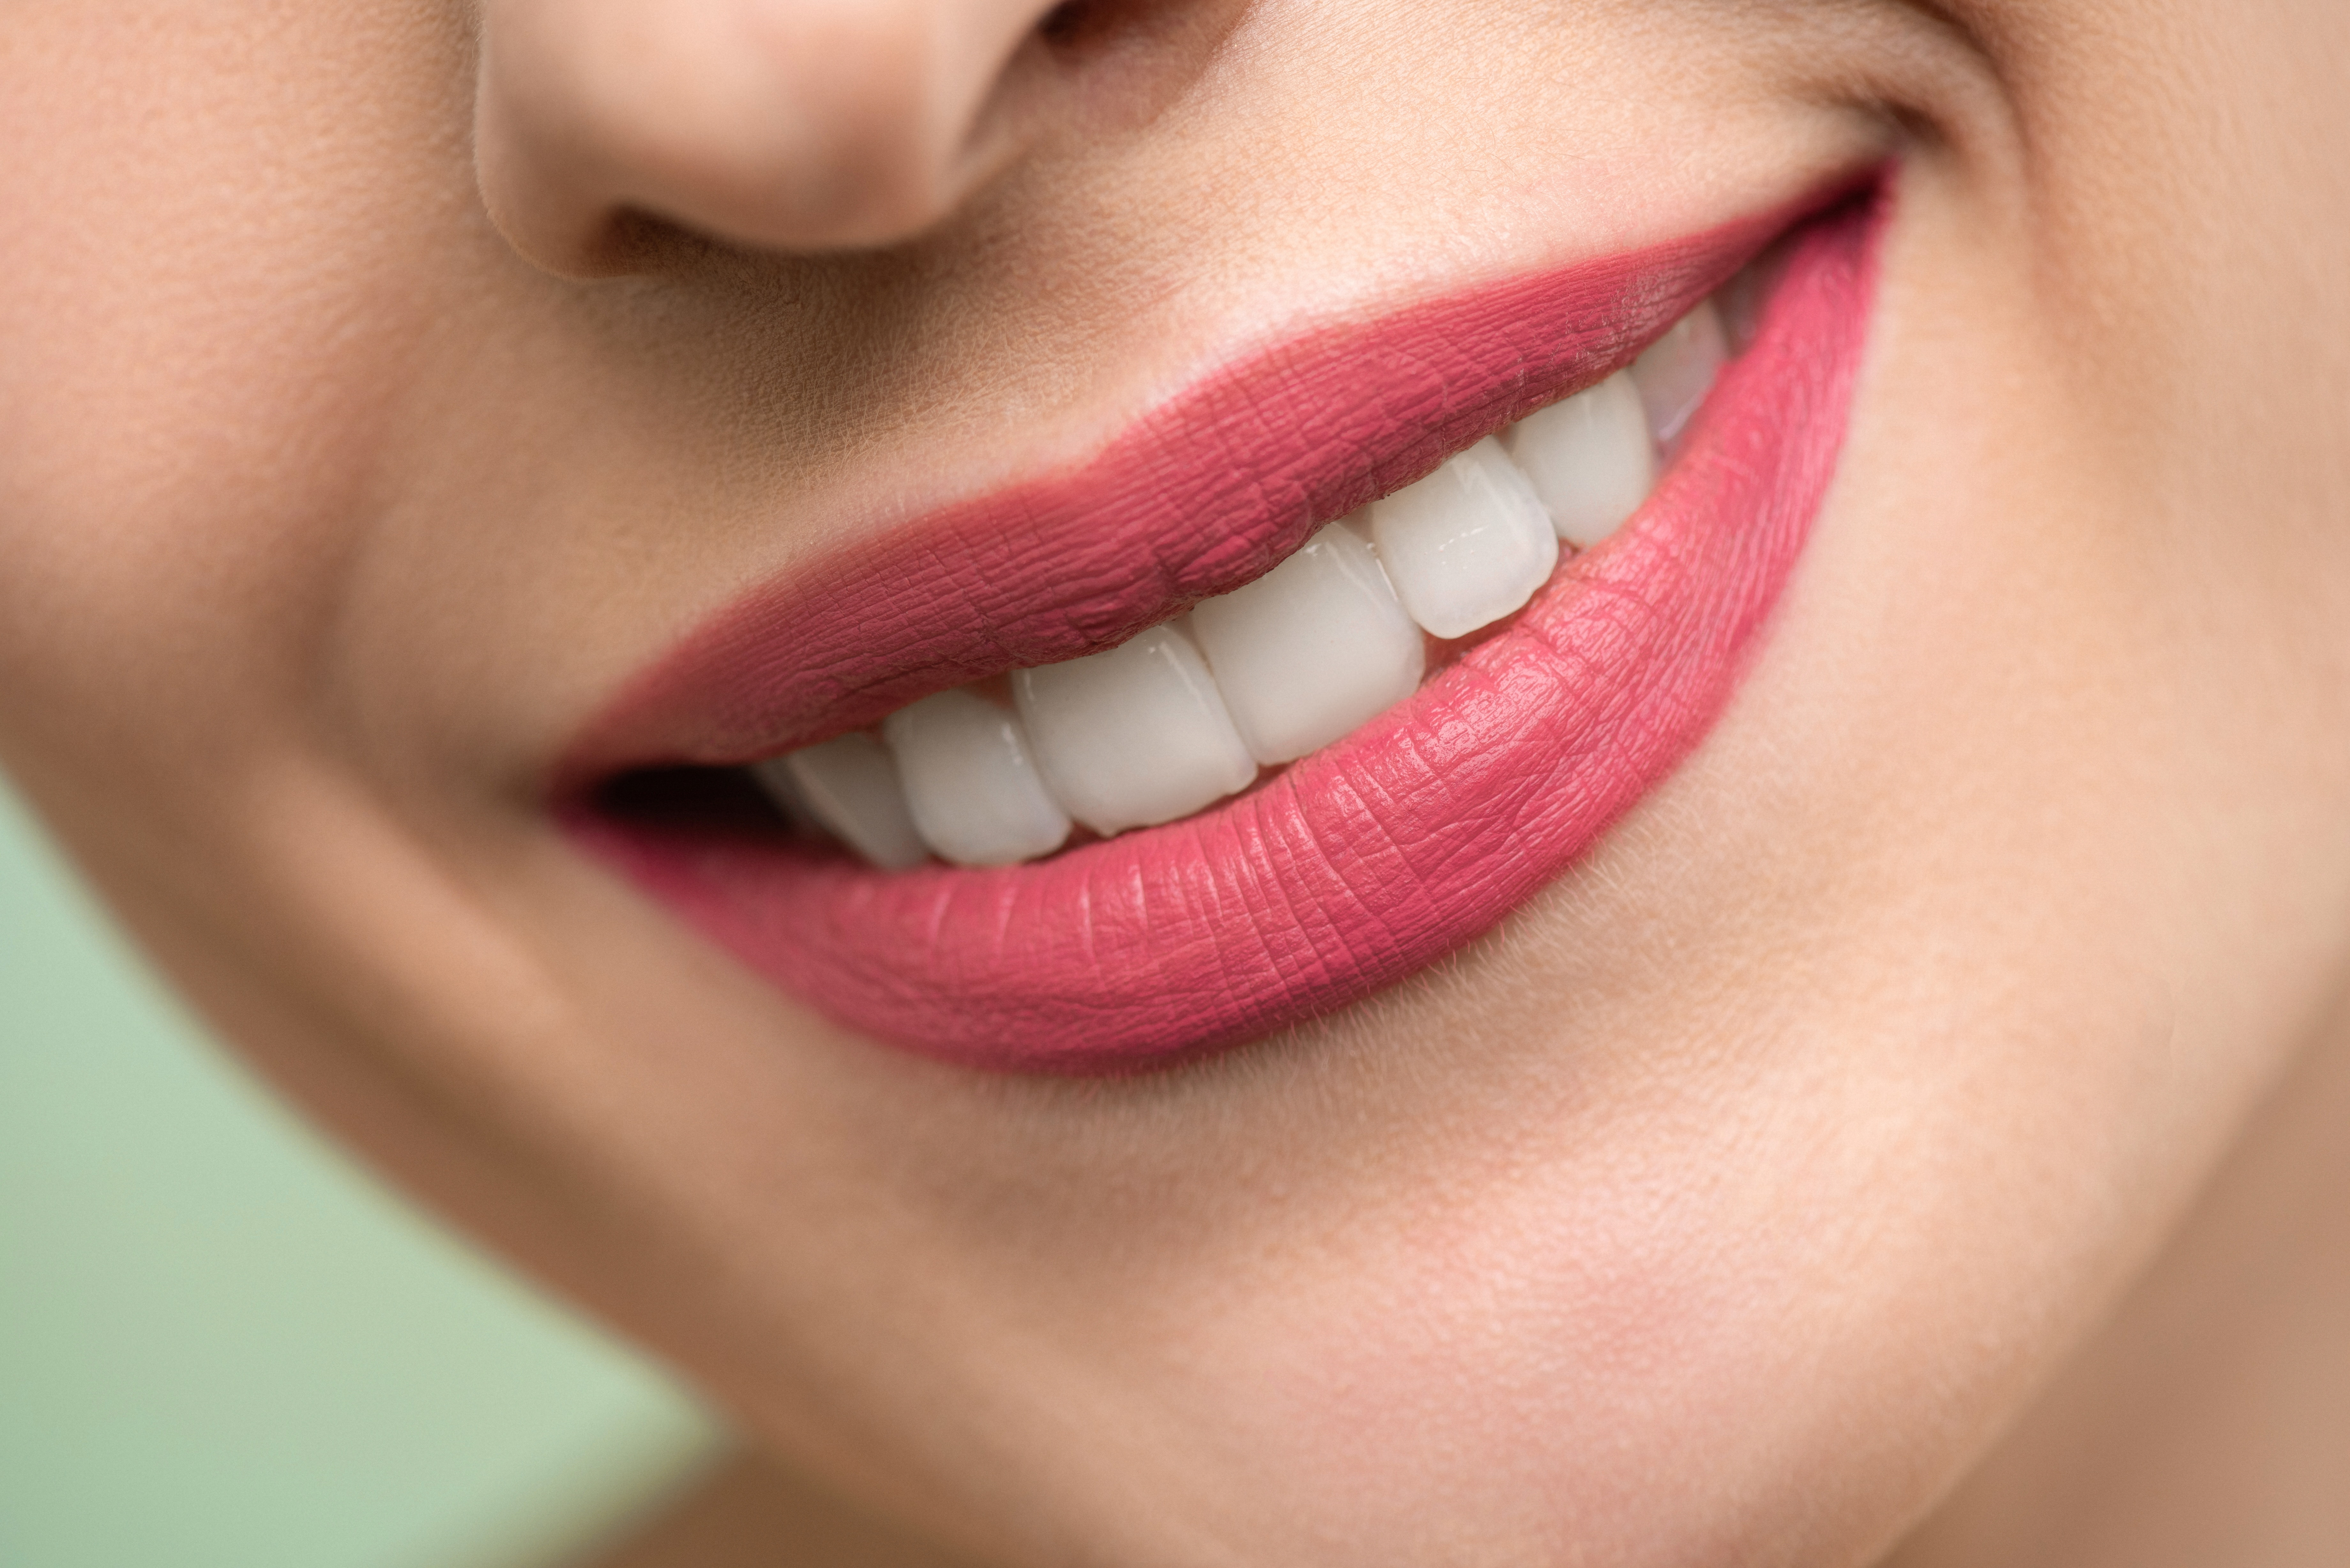 In-Chair Teeth Whitening vs. At-Home Whitening